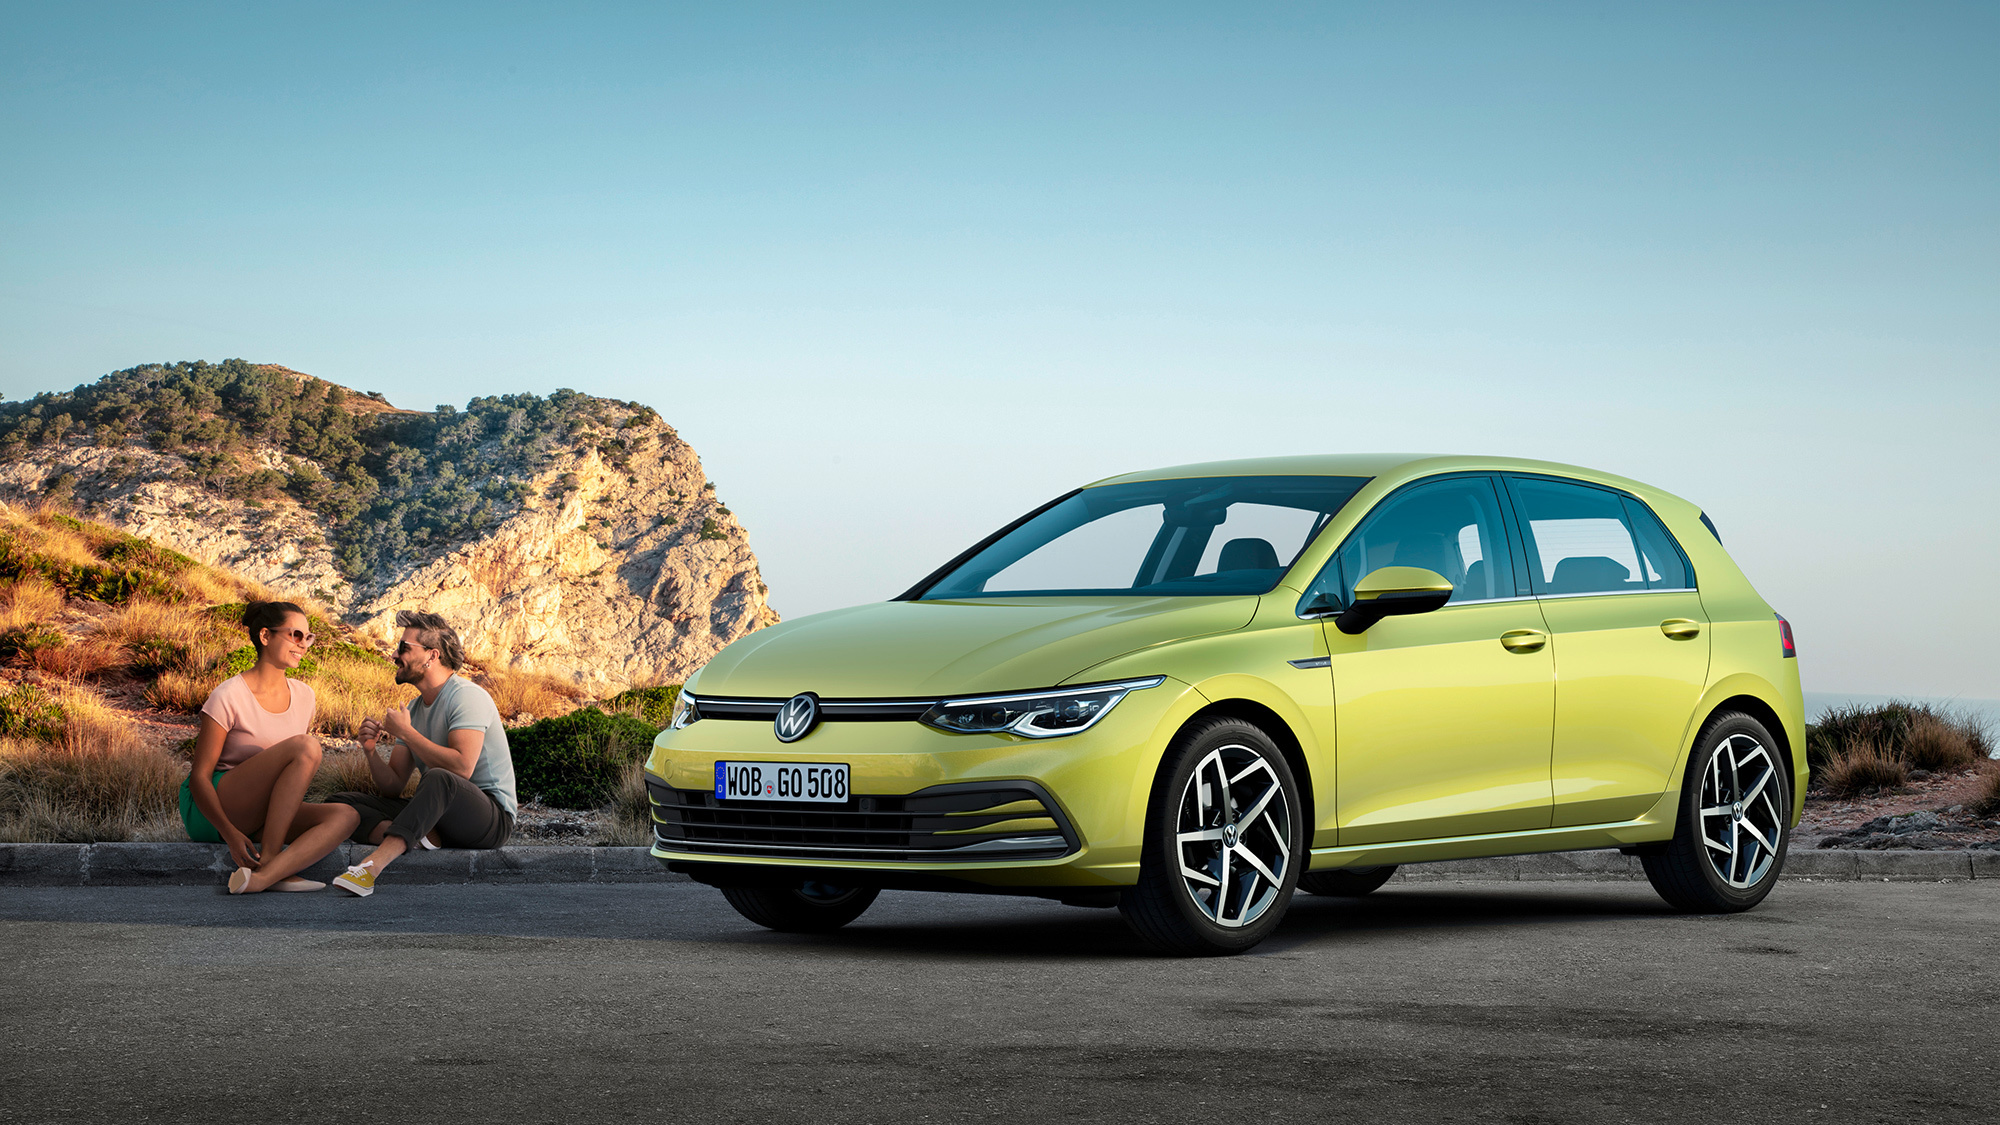 Премьера Volkswagen Golf: дубль восемь